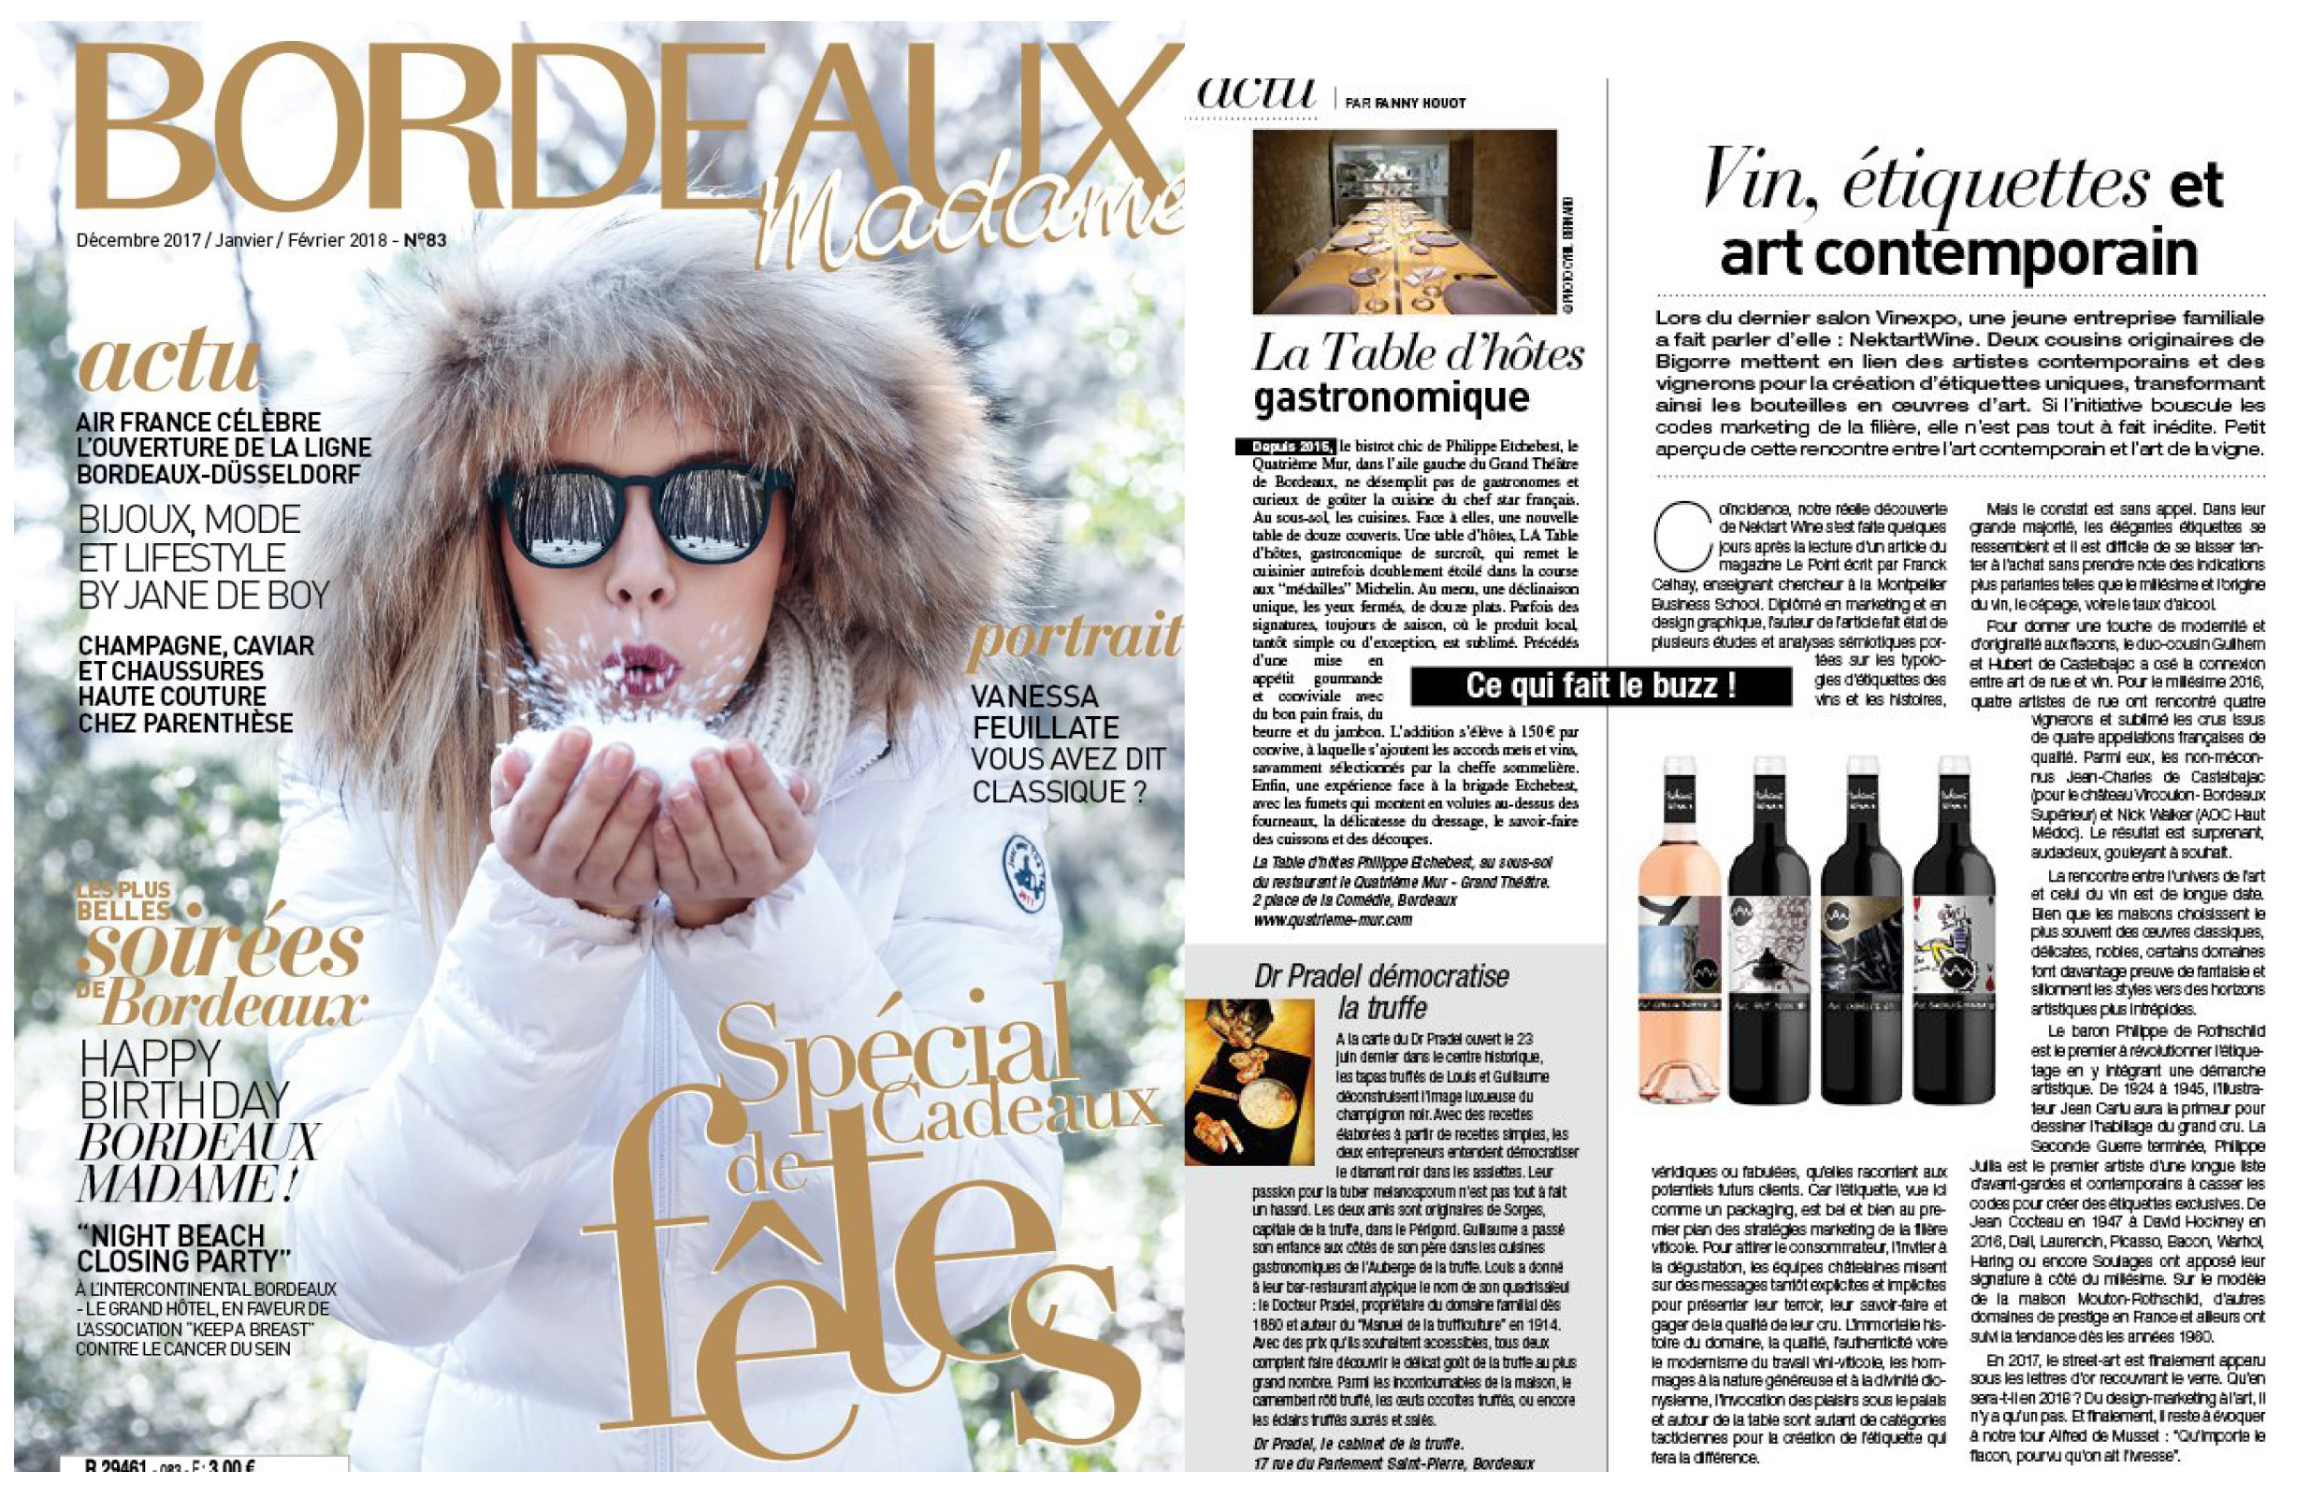 BORDEAUX MADAME  December 2017